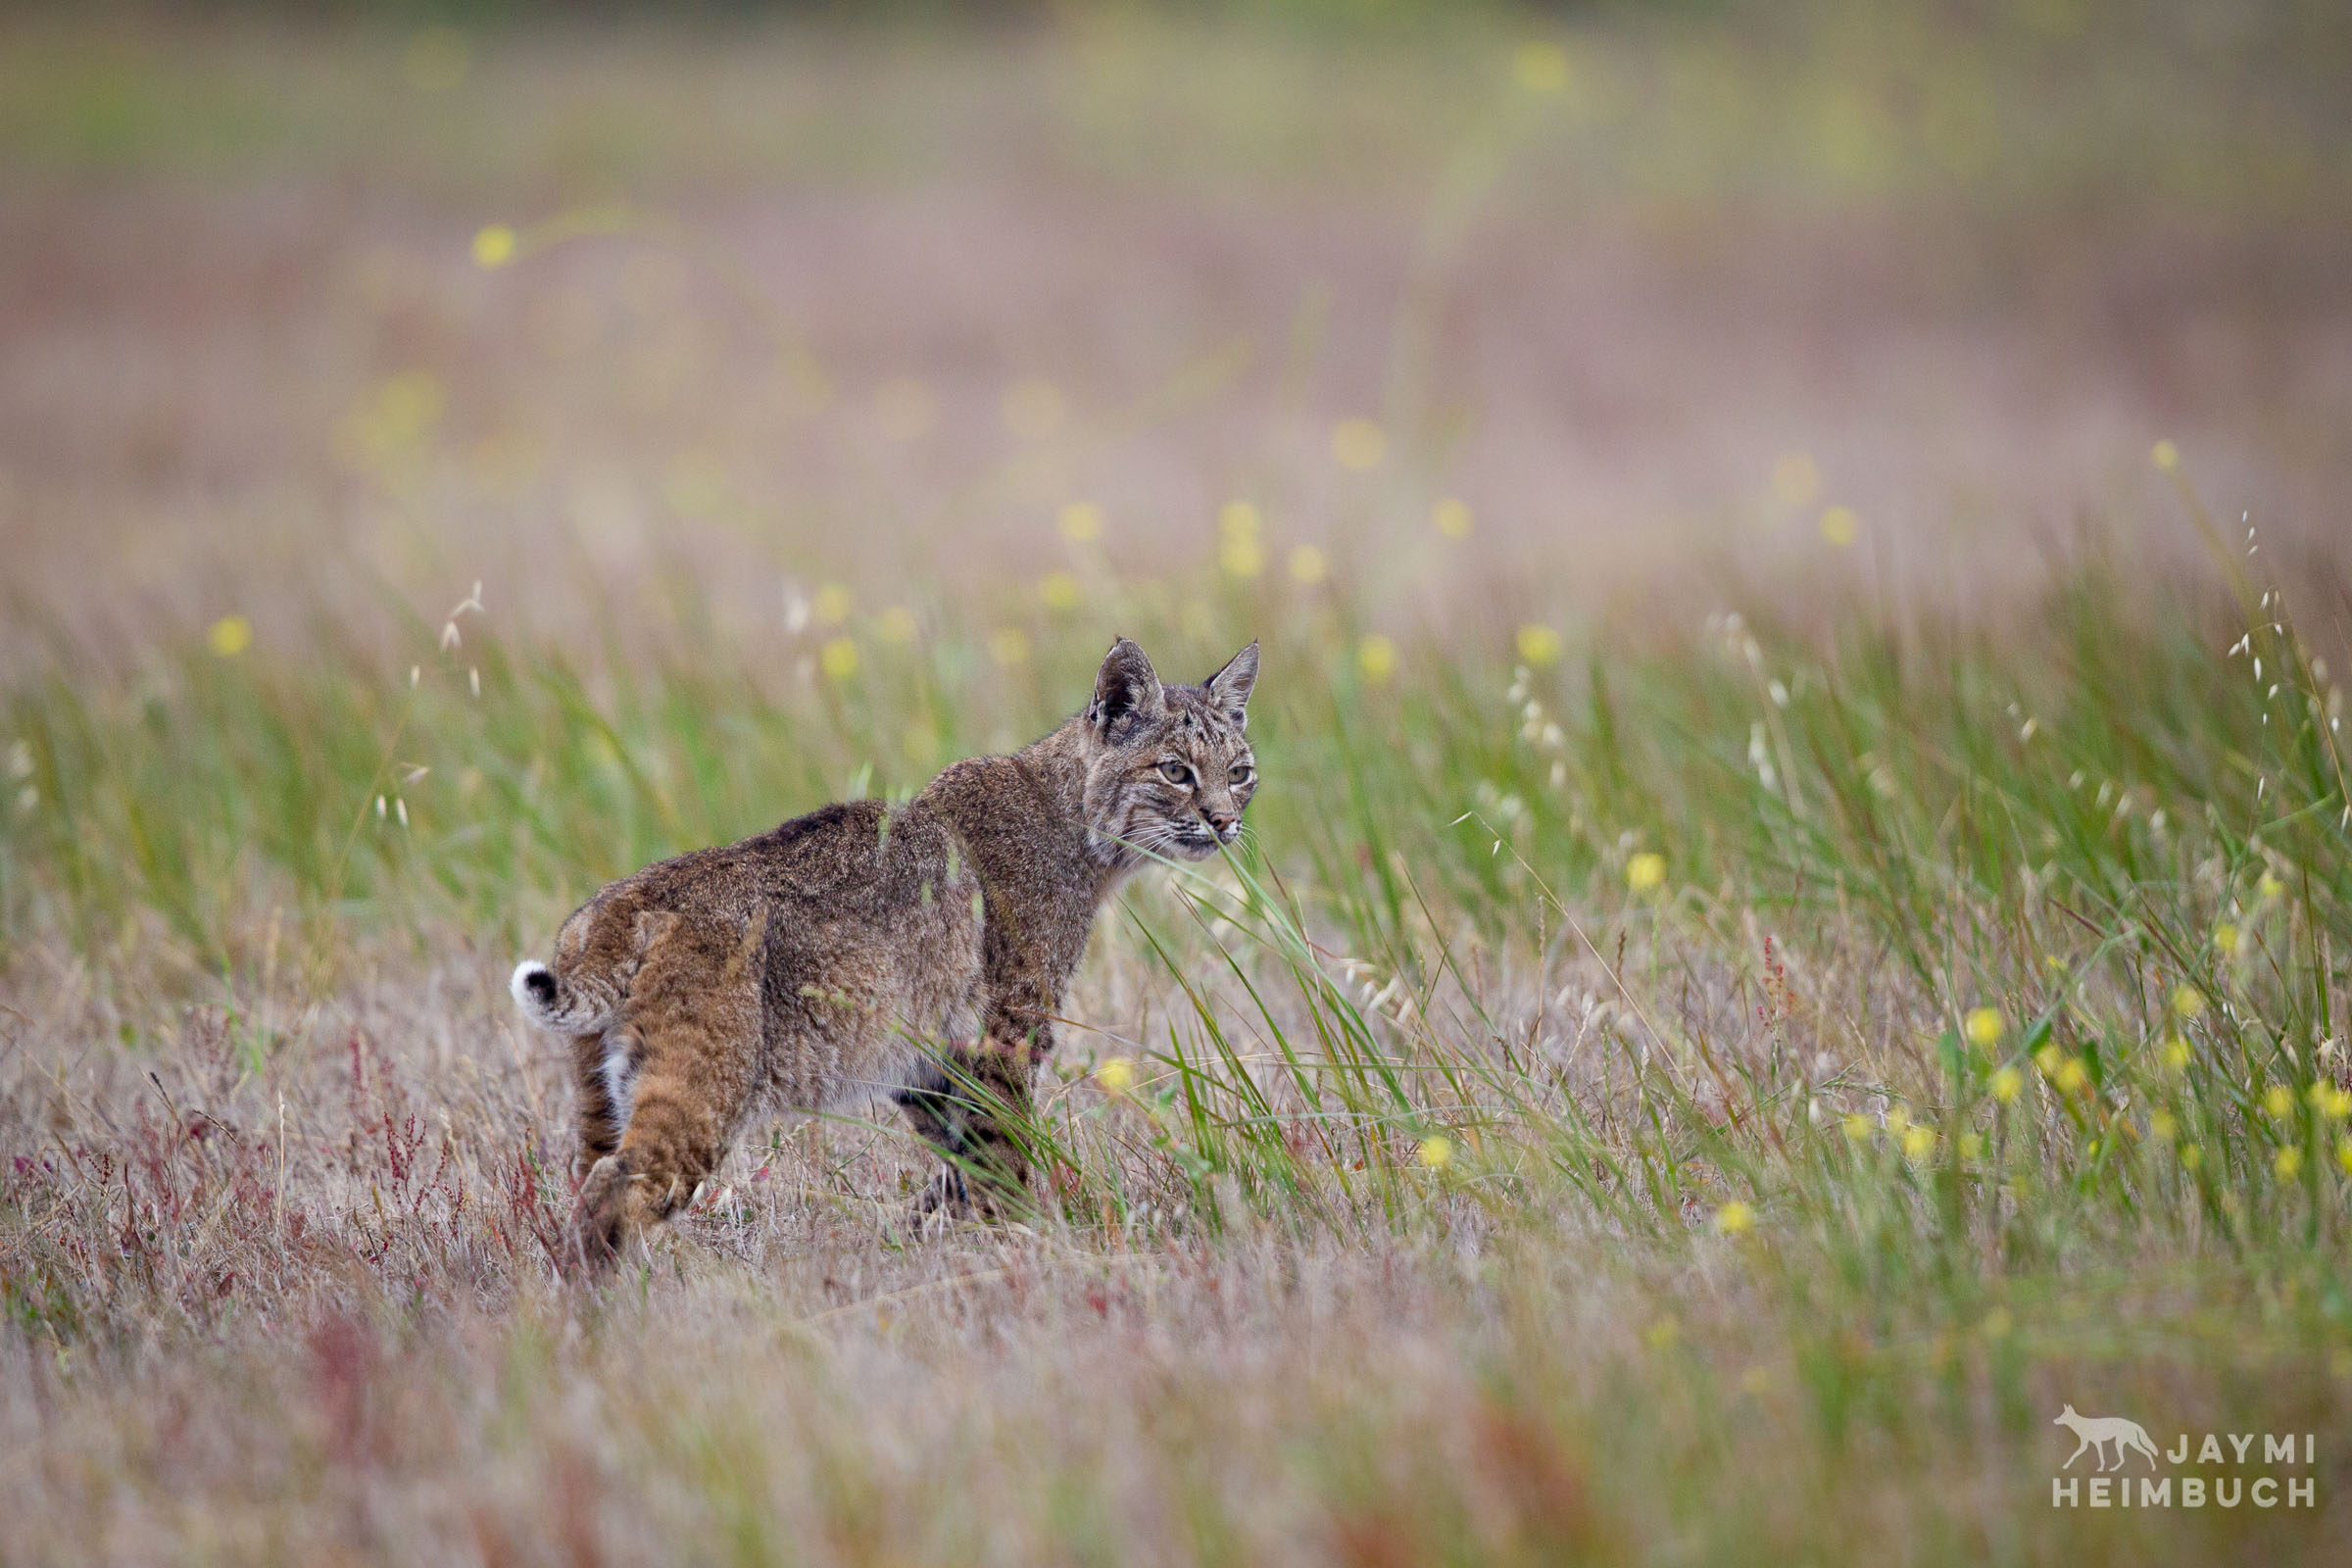 A bobcat walks through a field early on a foggy morning.